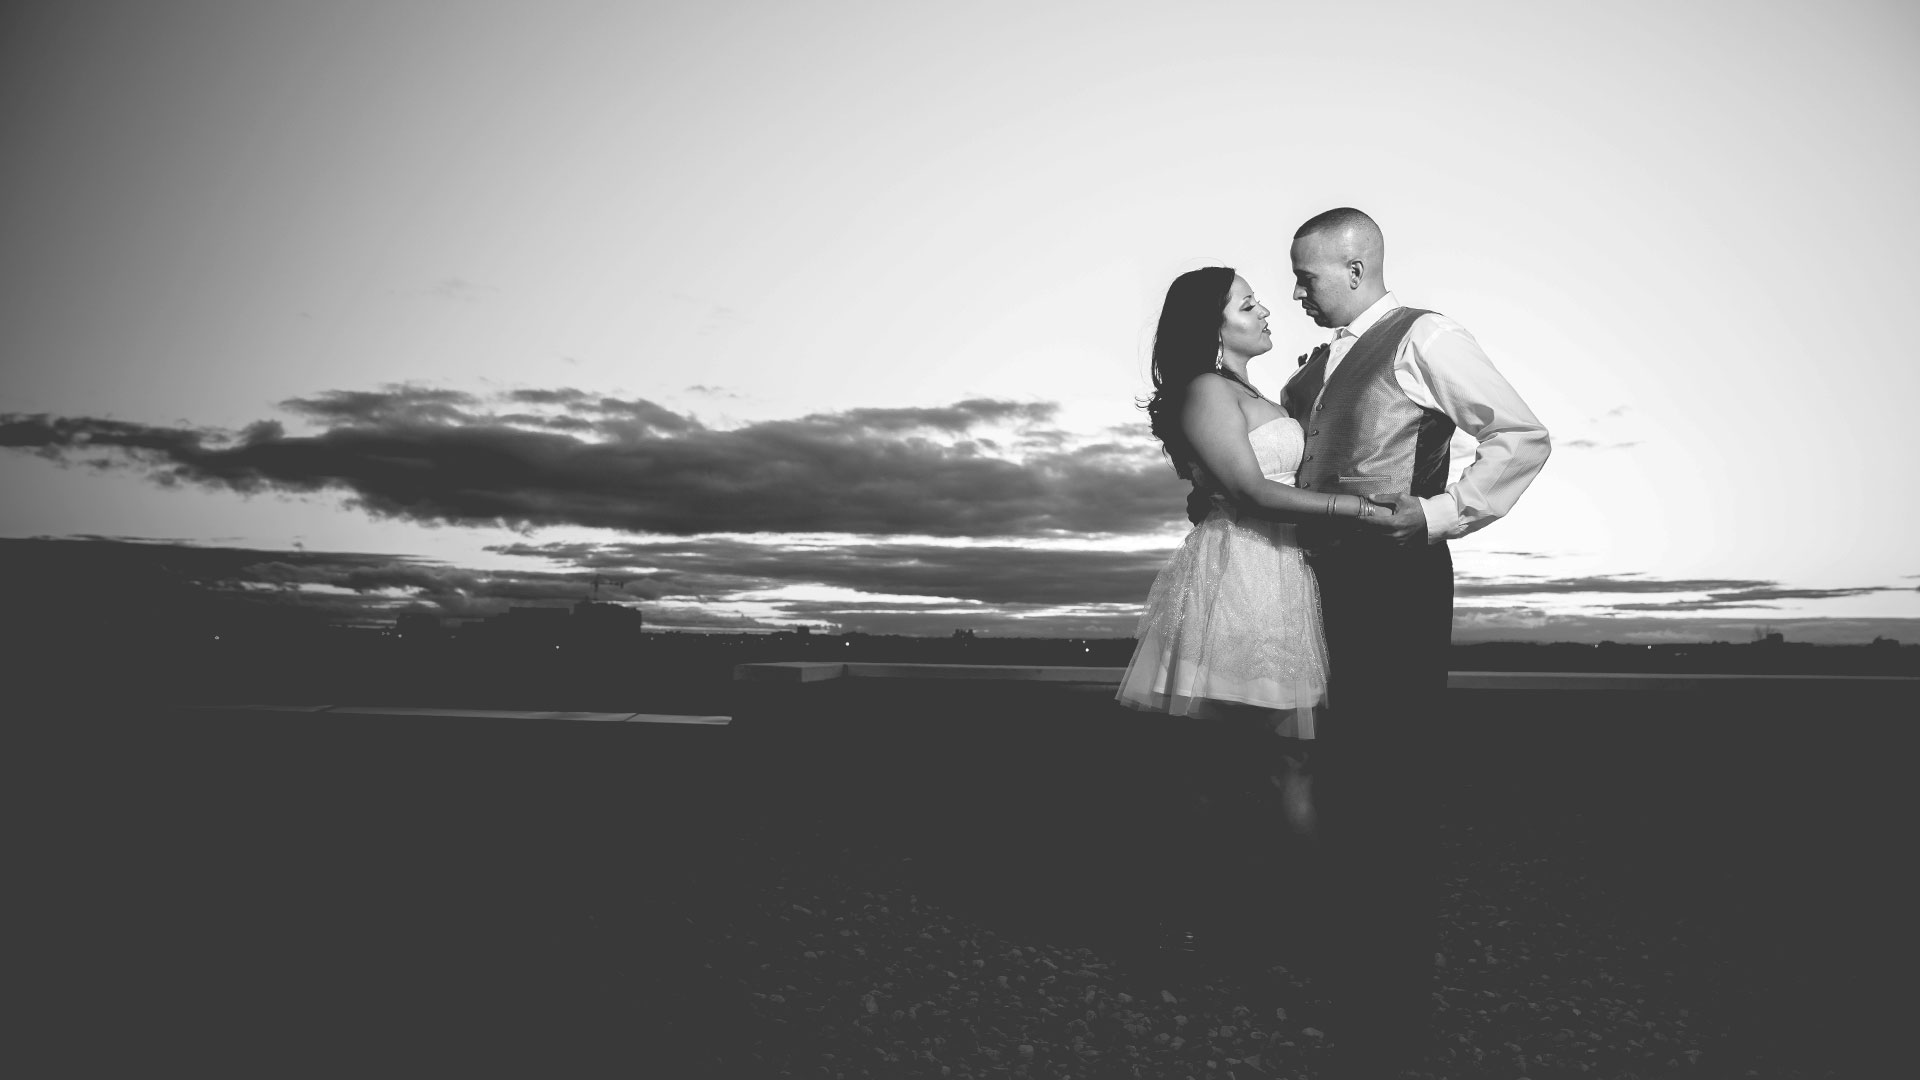 epic_sky_pictures_engagement_shoot_anoop_destination_windblowing_eshoot_romantic_blackandwhite_clouds_vancouver_toronto_canada_dancing_wedding_epicskypictures_site